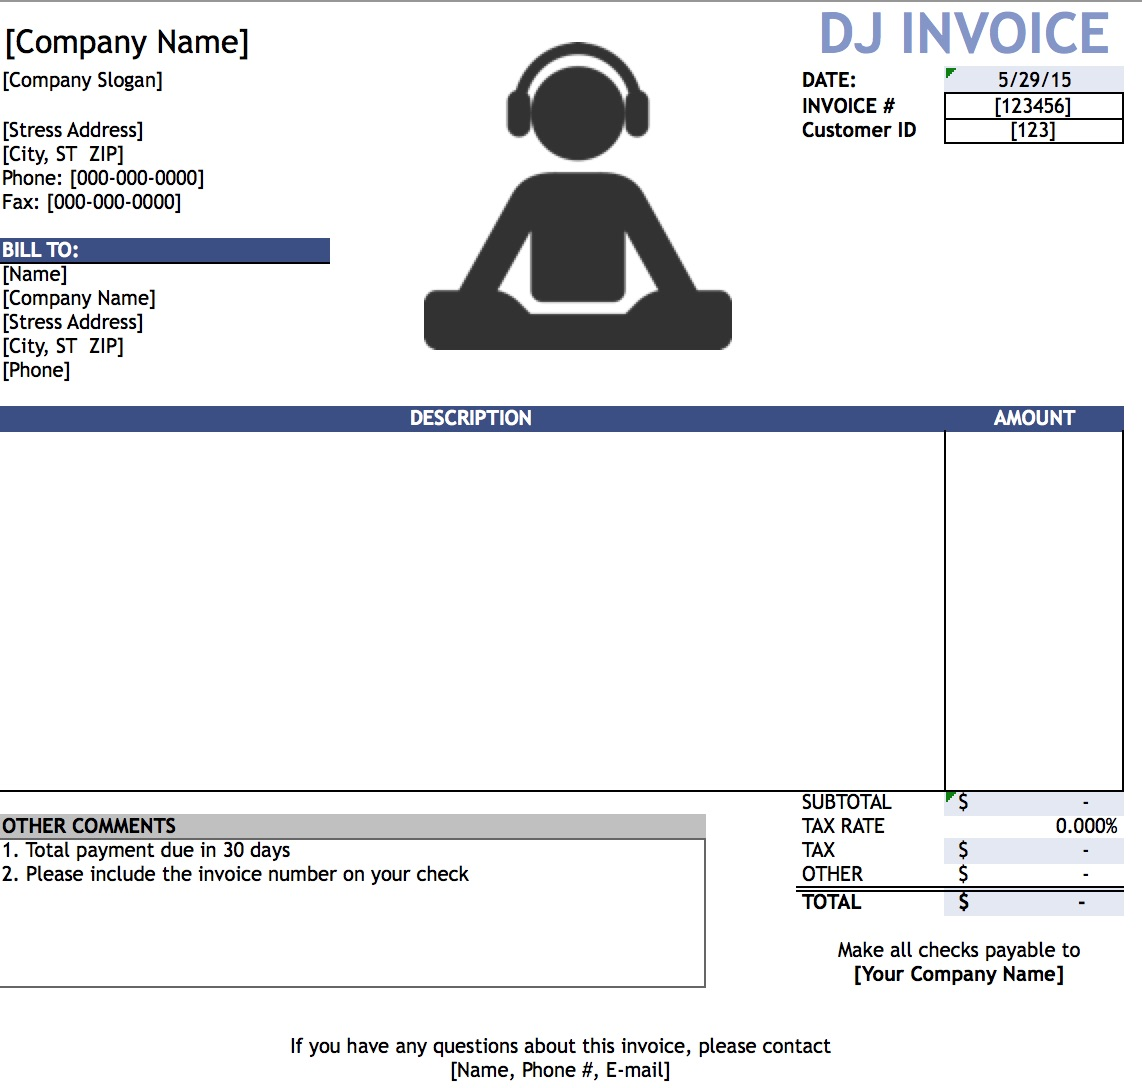 Free DJ Disc Jockey Invoice Template Excel PDF Word Doc - Free business invoice forms for service business